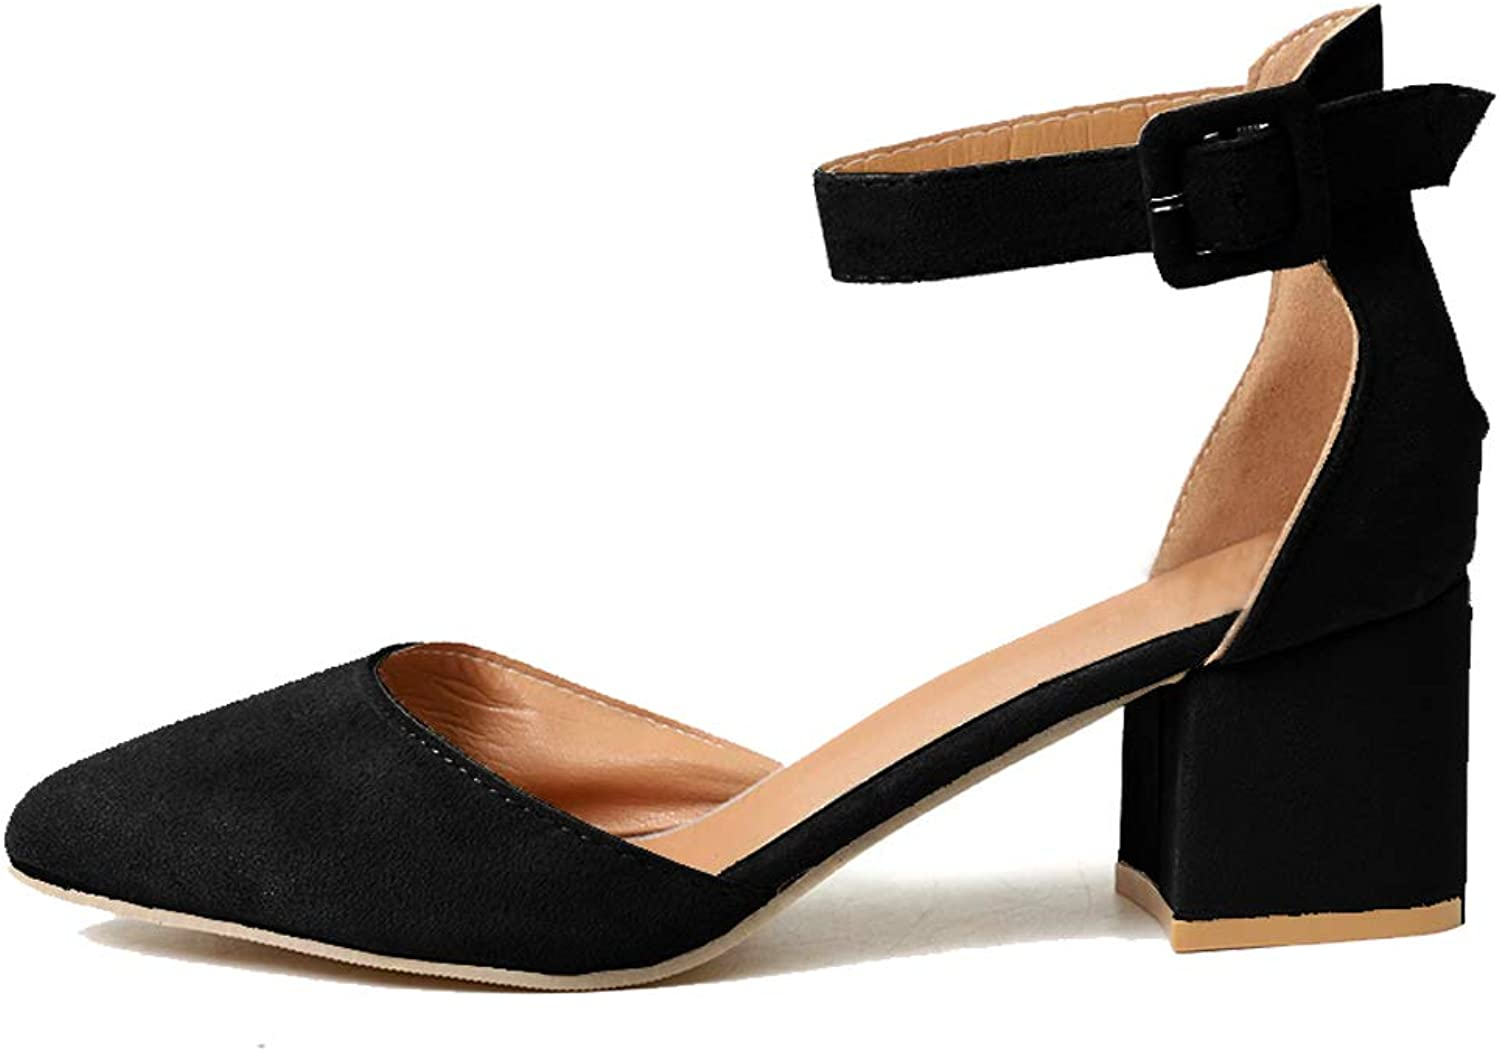 YUhe2018Cw Womens Heeled Ankle Buckle Block Pointed Toe Cut Out Pumps Sandals Black 38